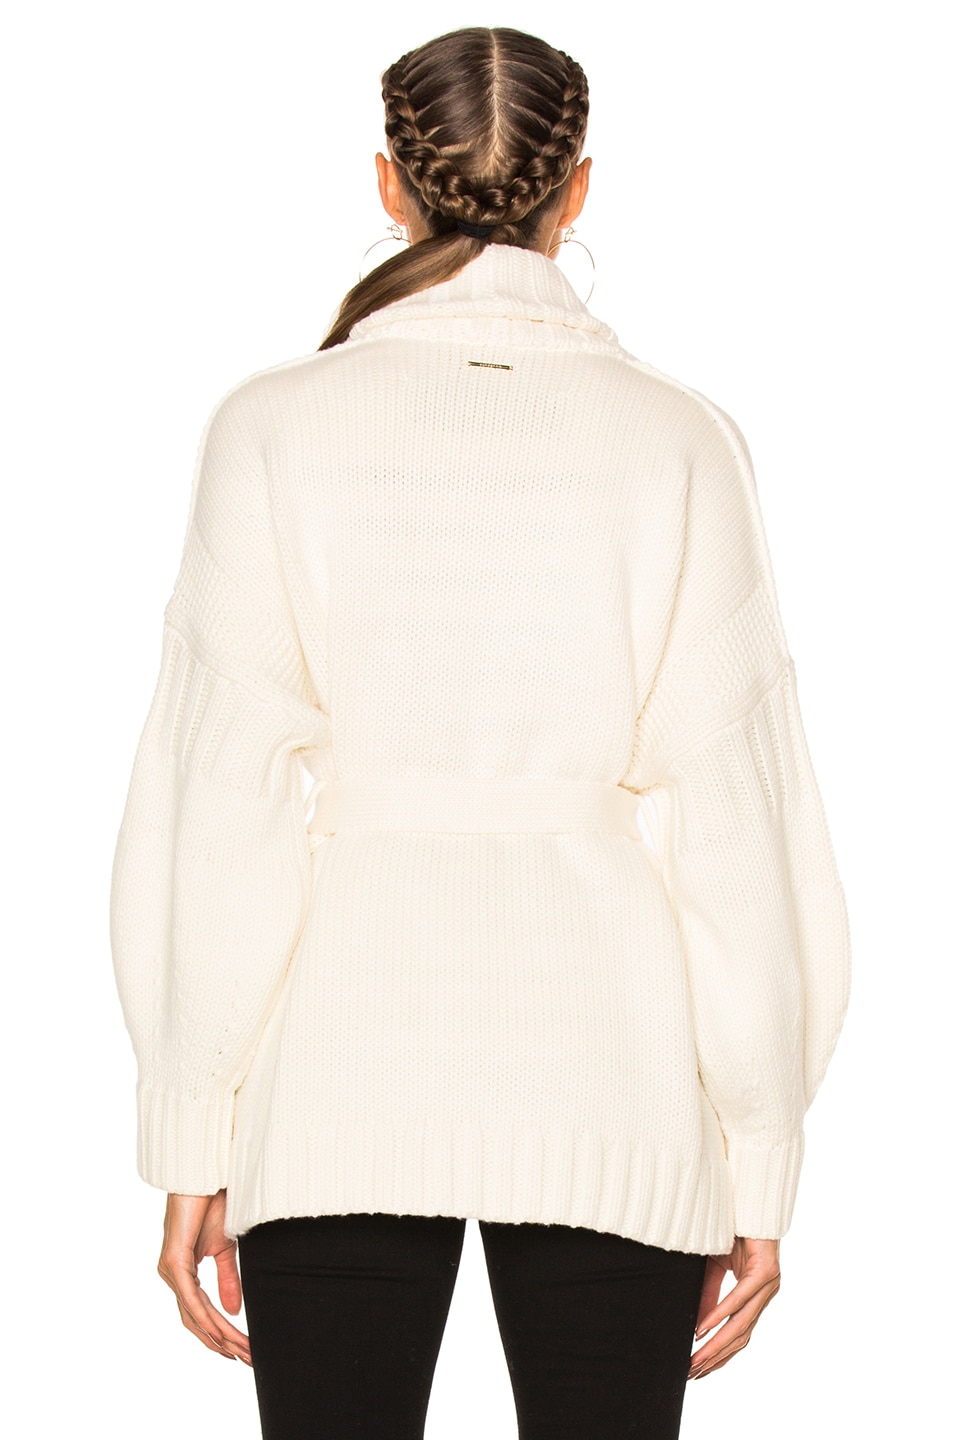 Burberry Cotton Cashmere Cardigan in Natural White | FWRD